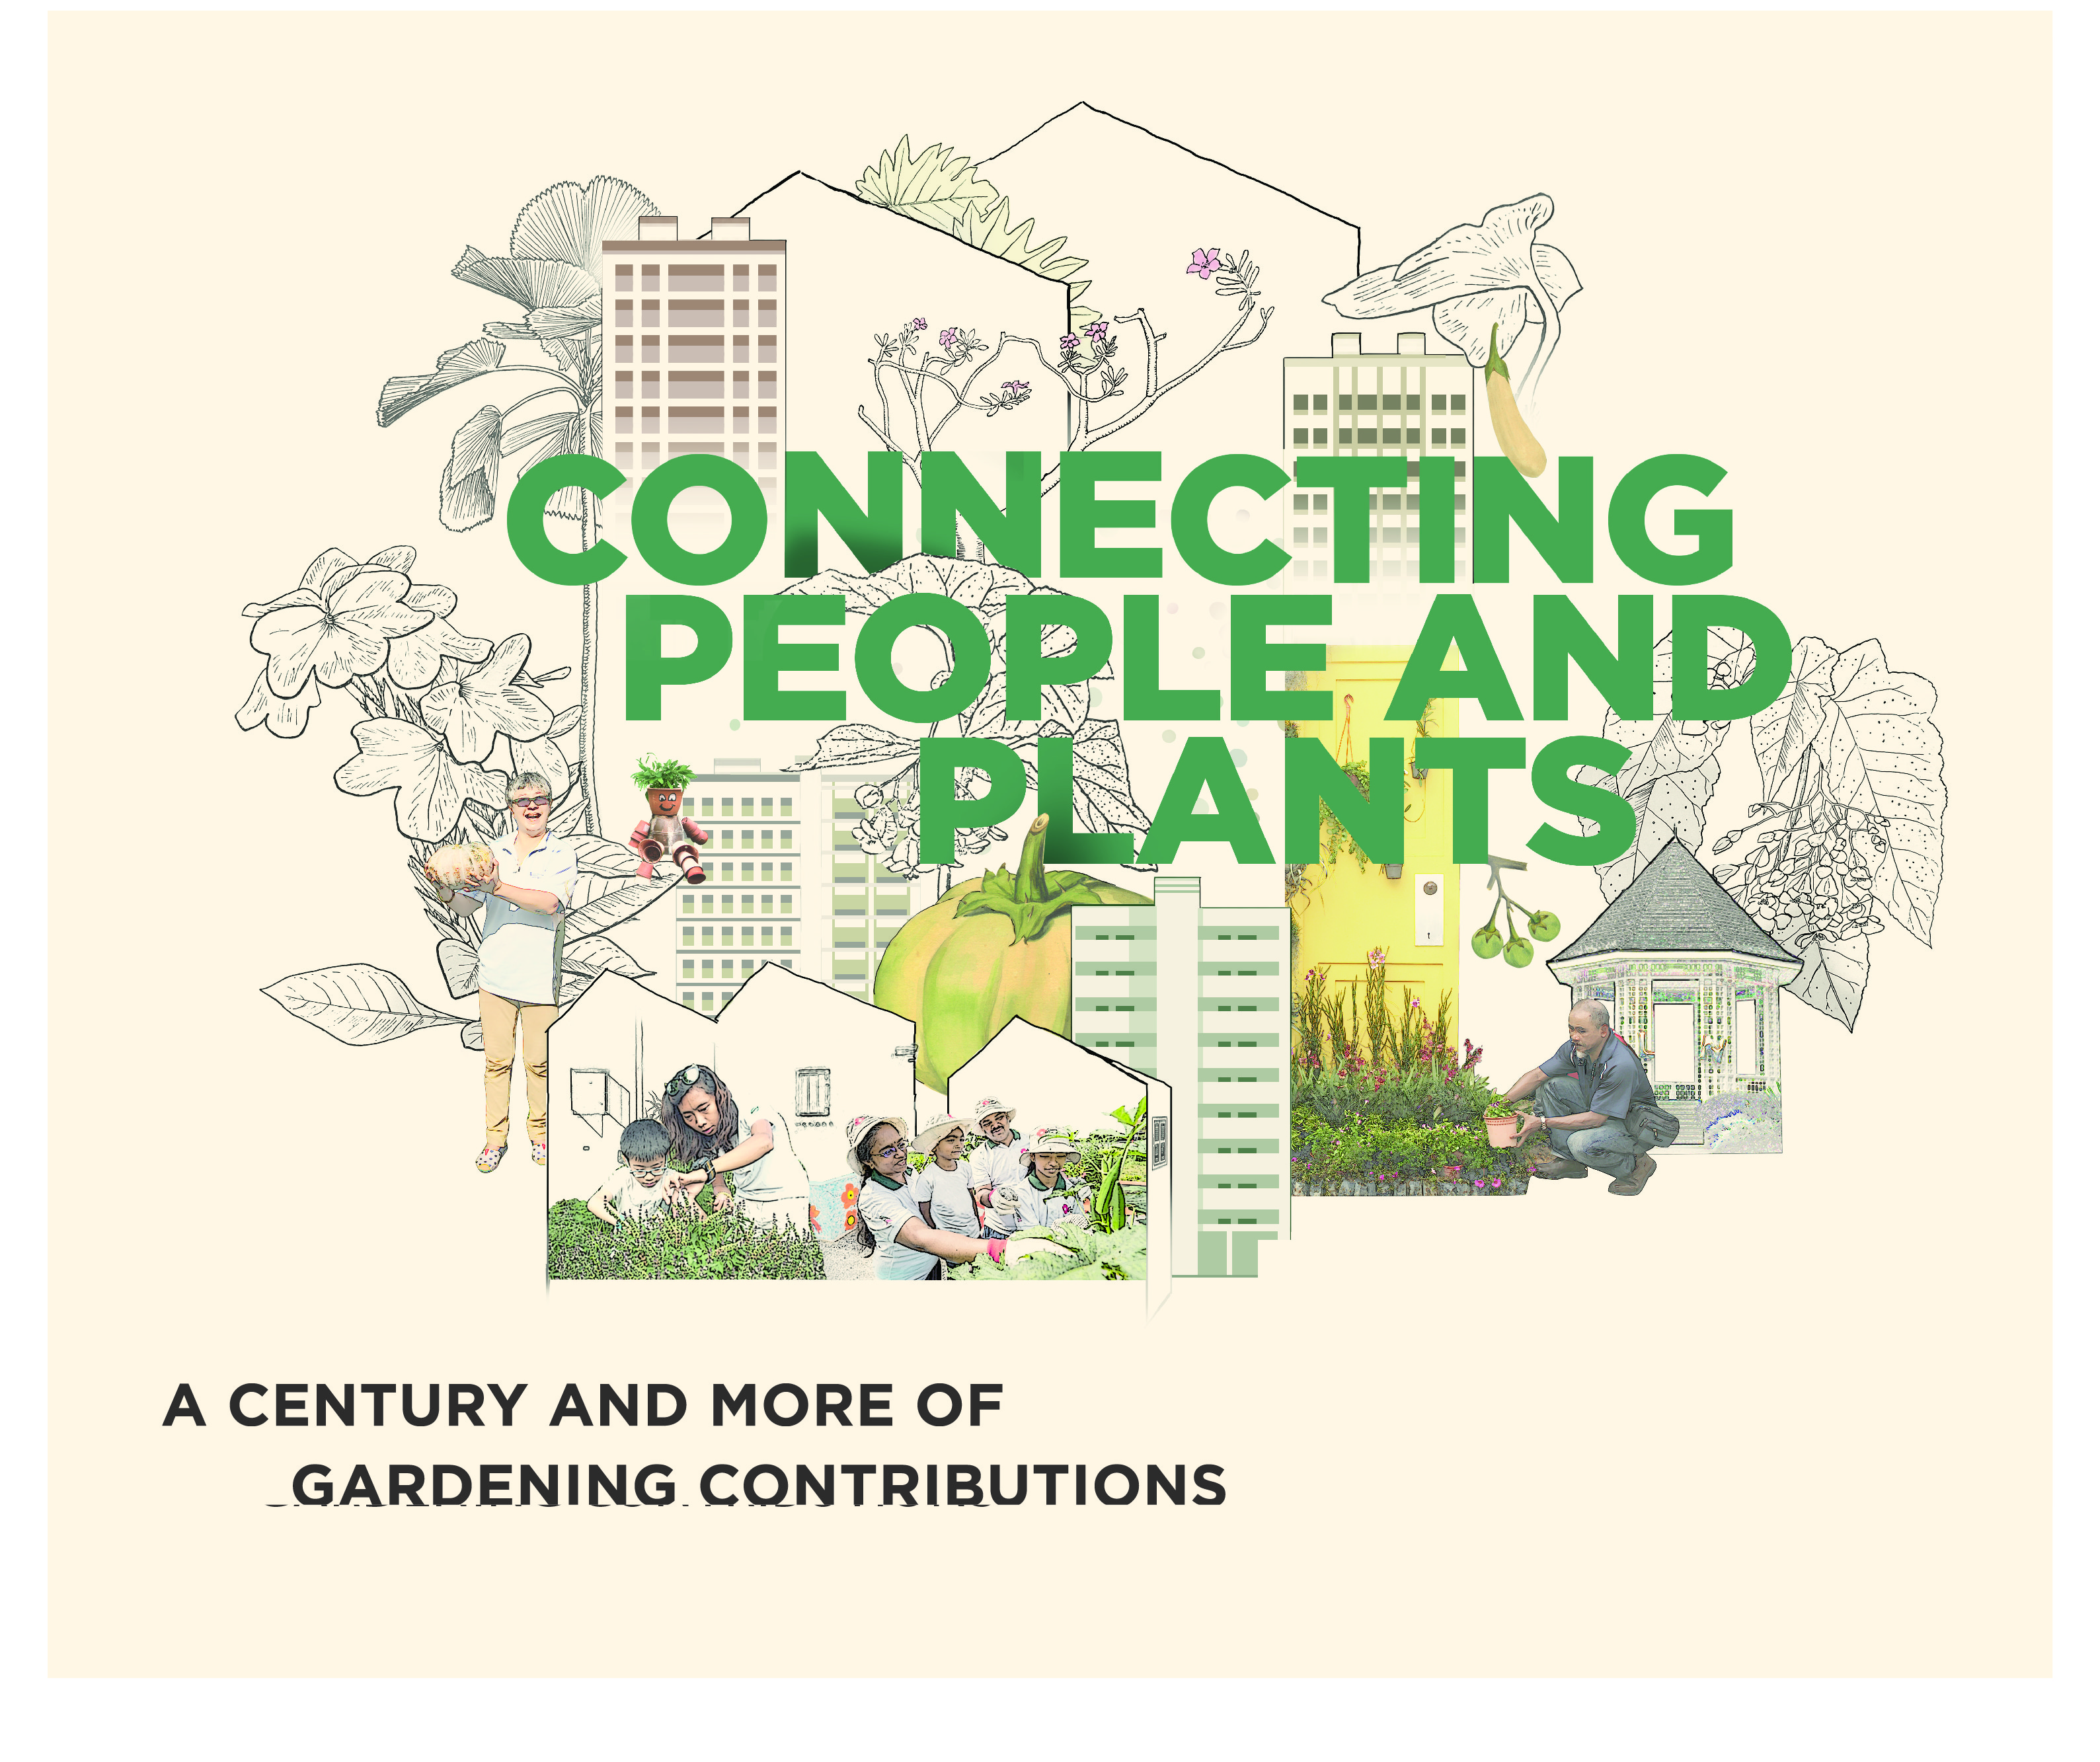 Connecting People and Plants